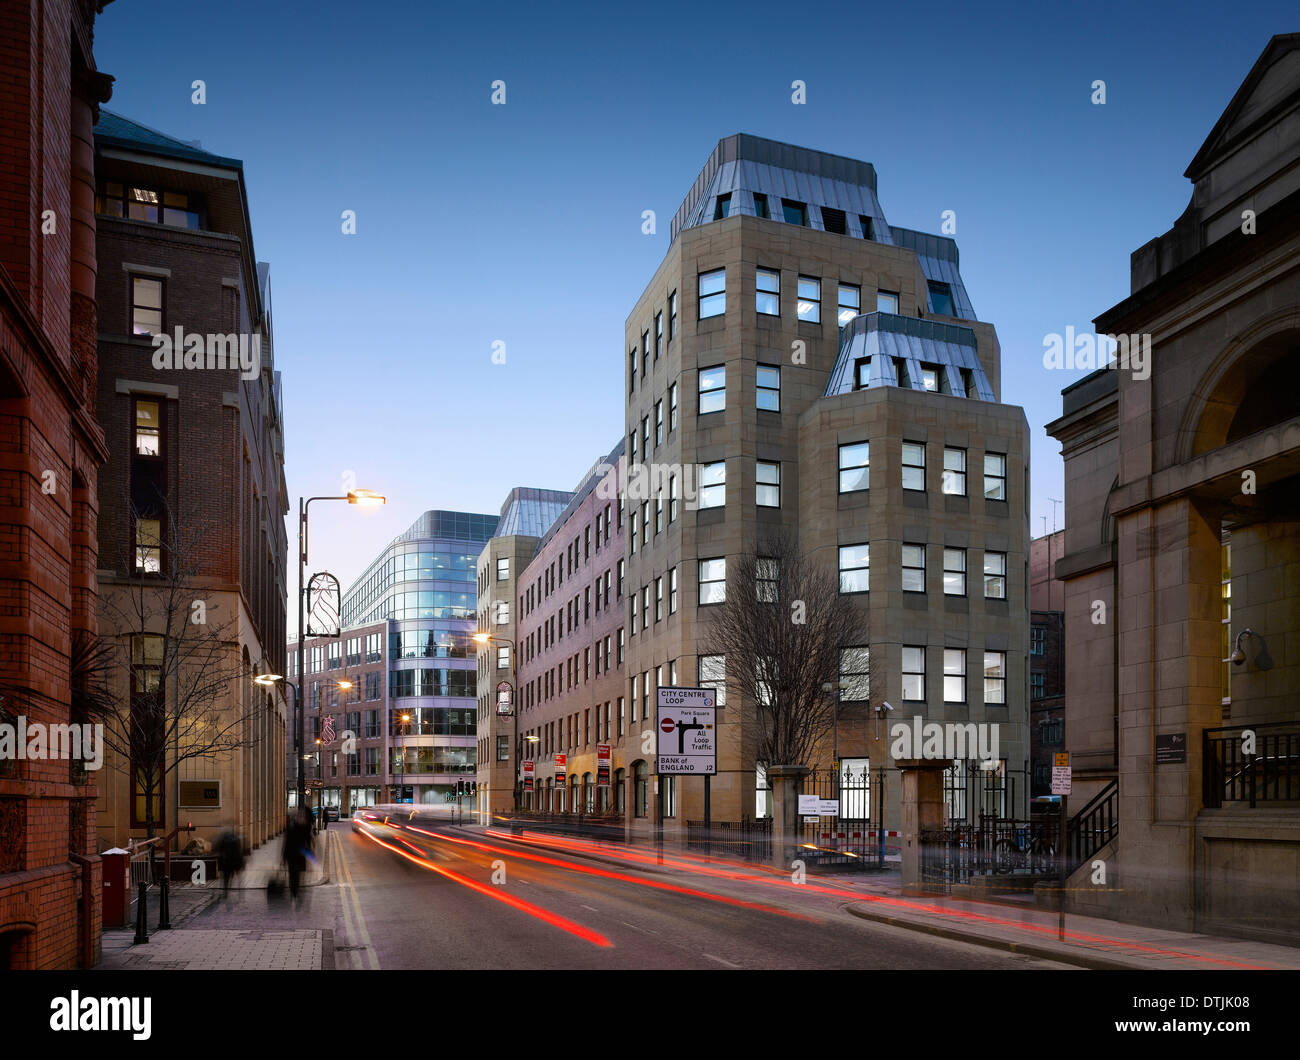 Exterior of commercial building on King Street, Leeds, Yorkshire. - Stock Image